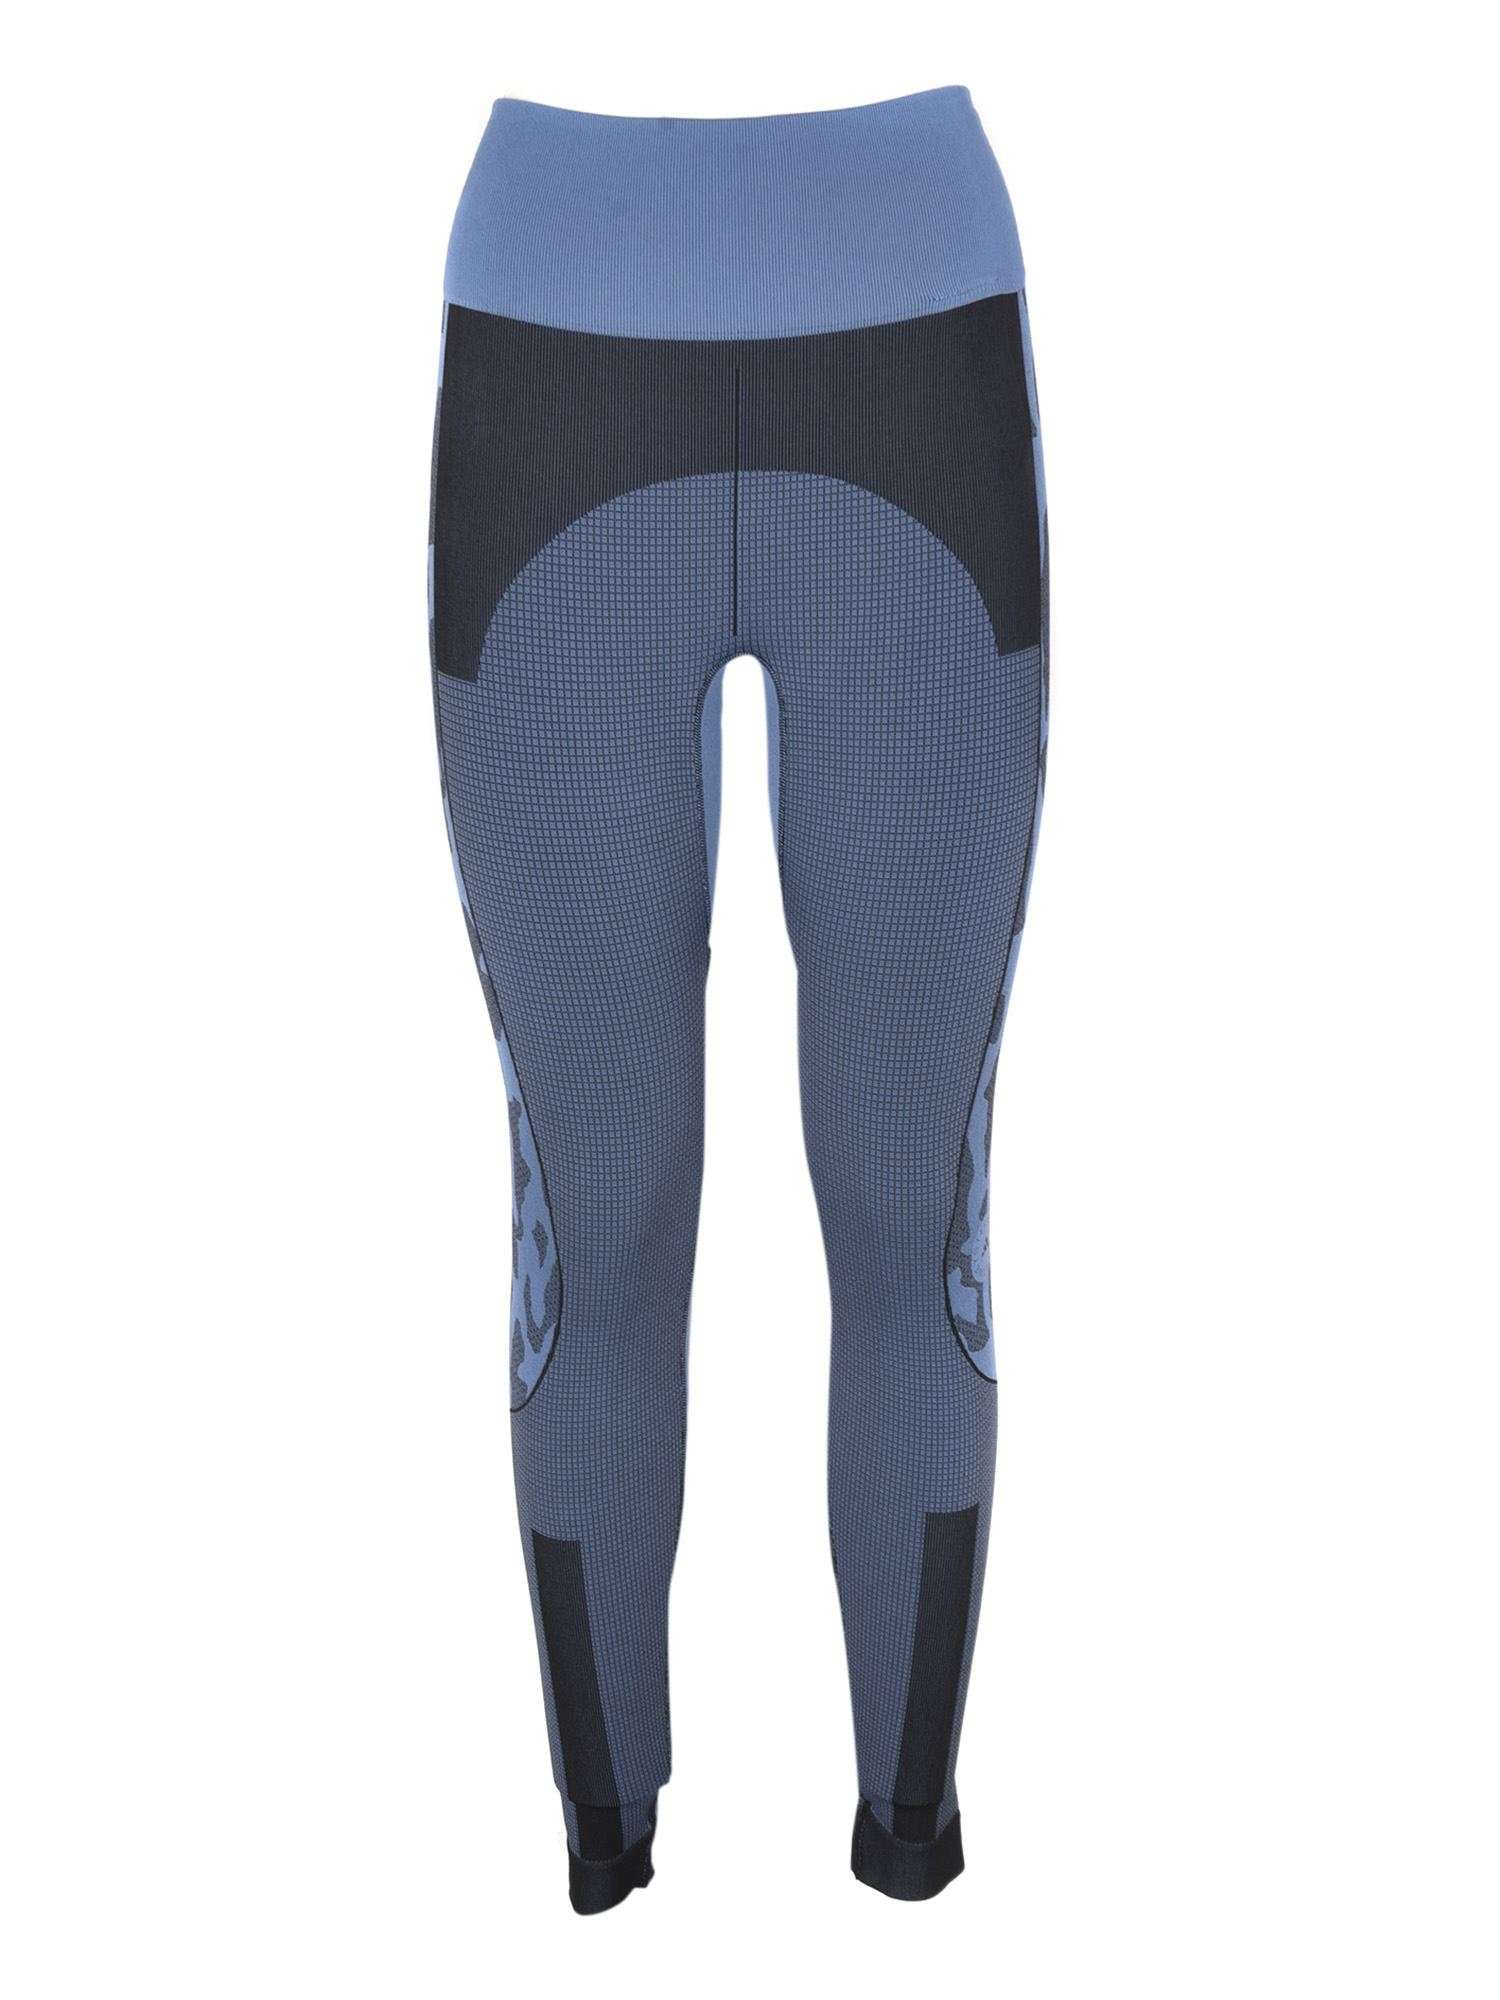 Adidas By Stella Mccartney ADIDAS BY STELLA MCCARTNEY TRUEPURPOSE LEGGINGS IN BLUE AND LIGHT BLUE